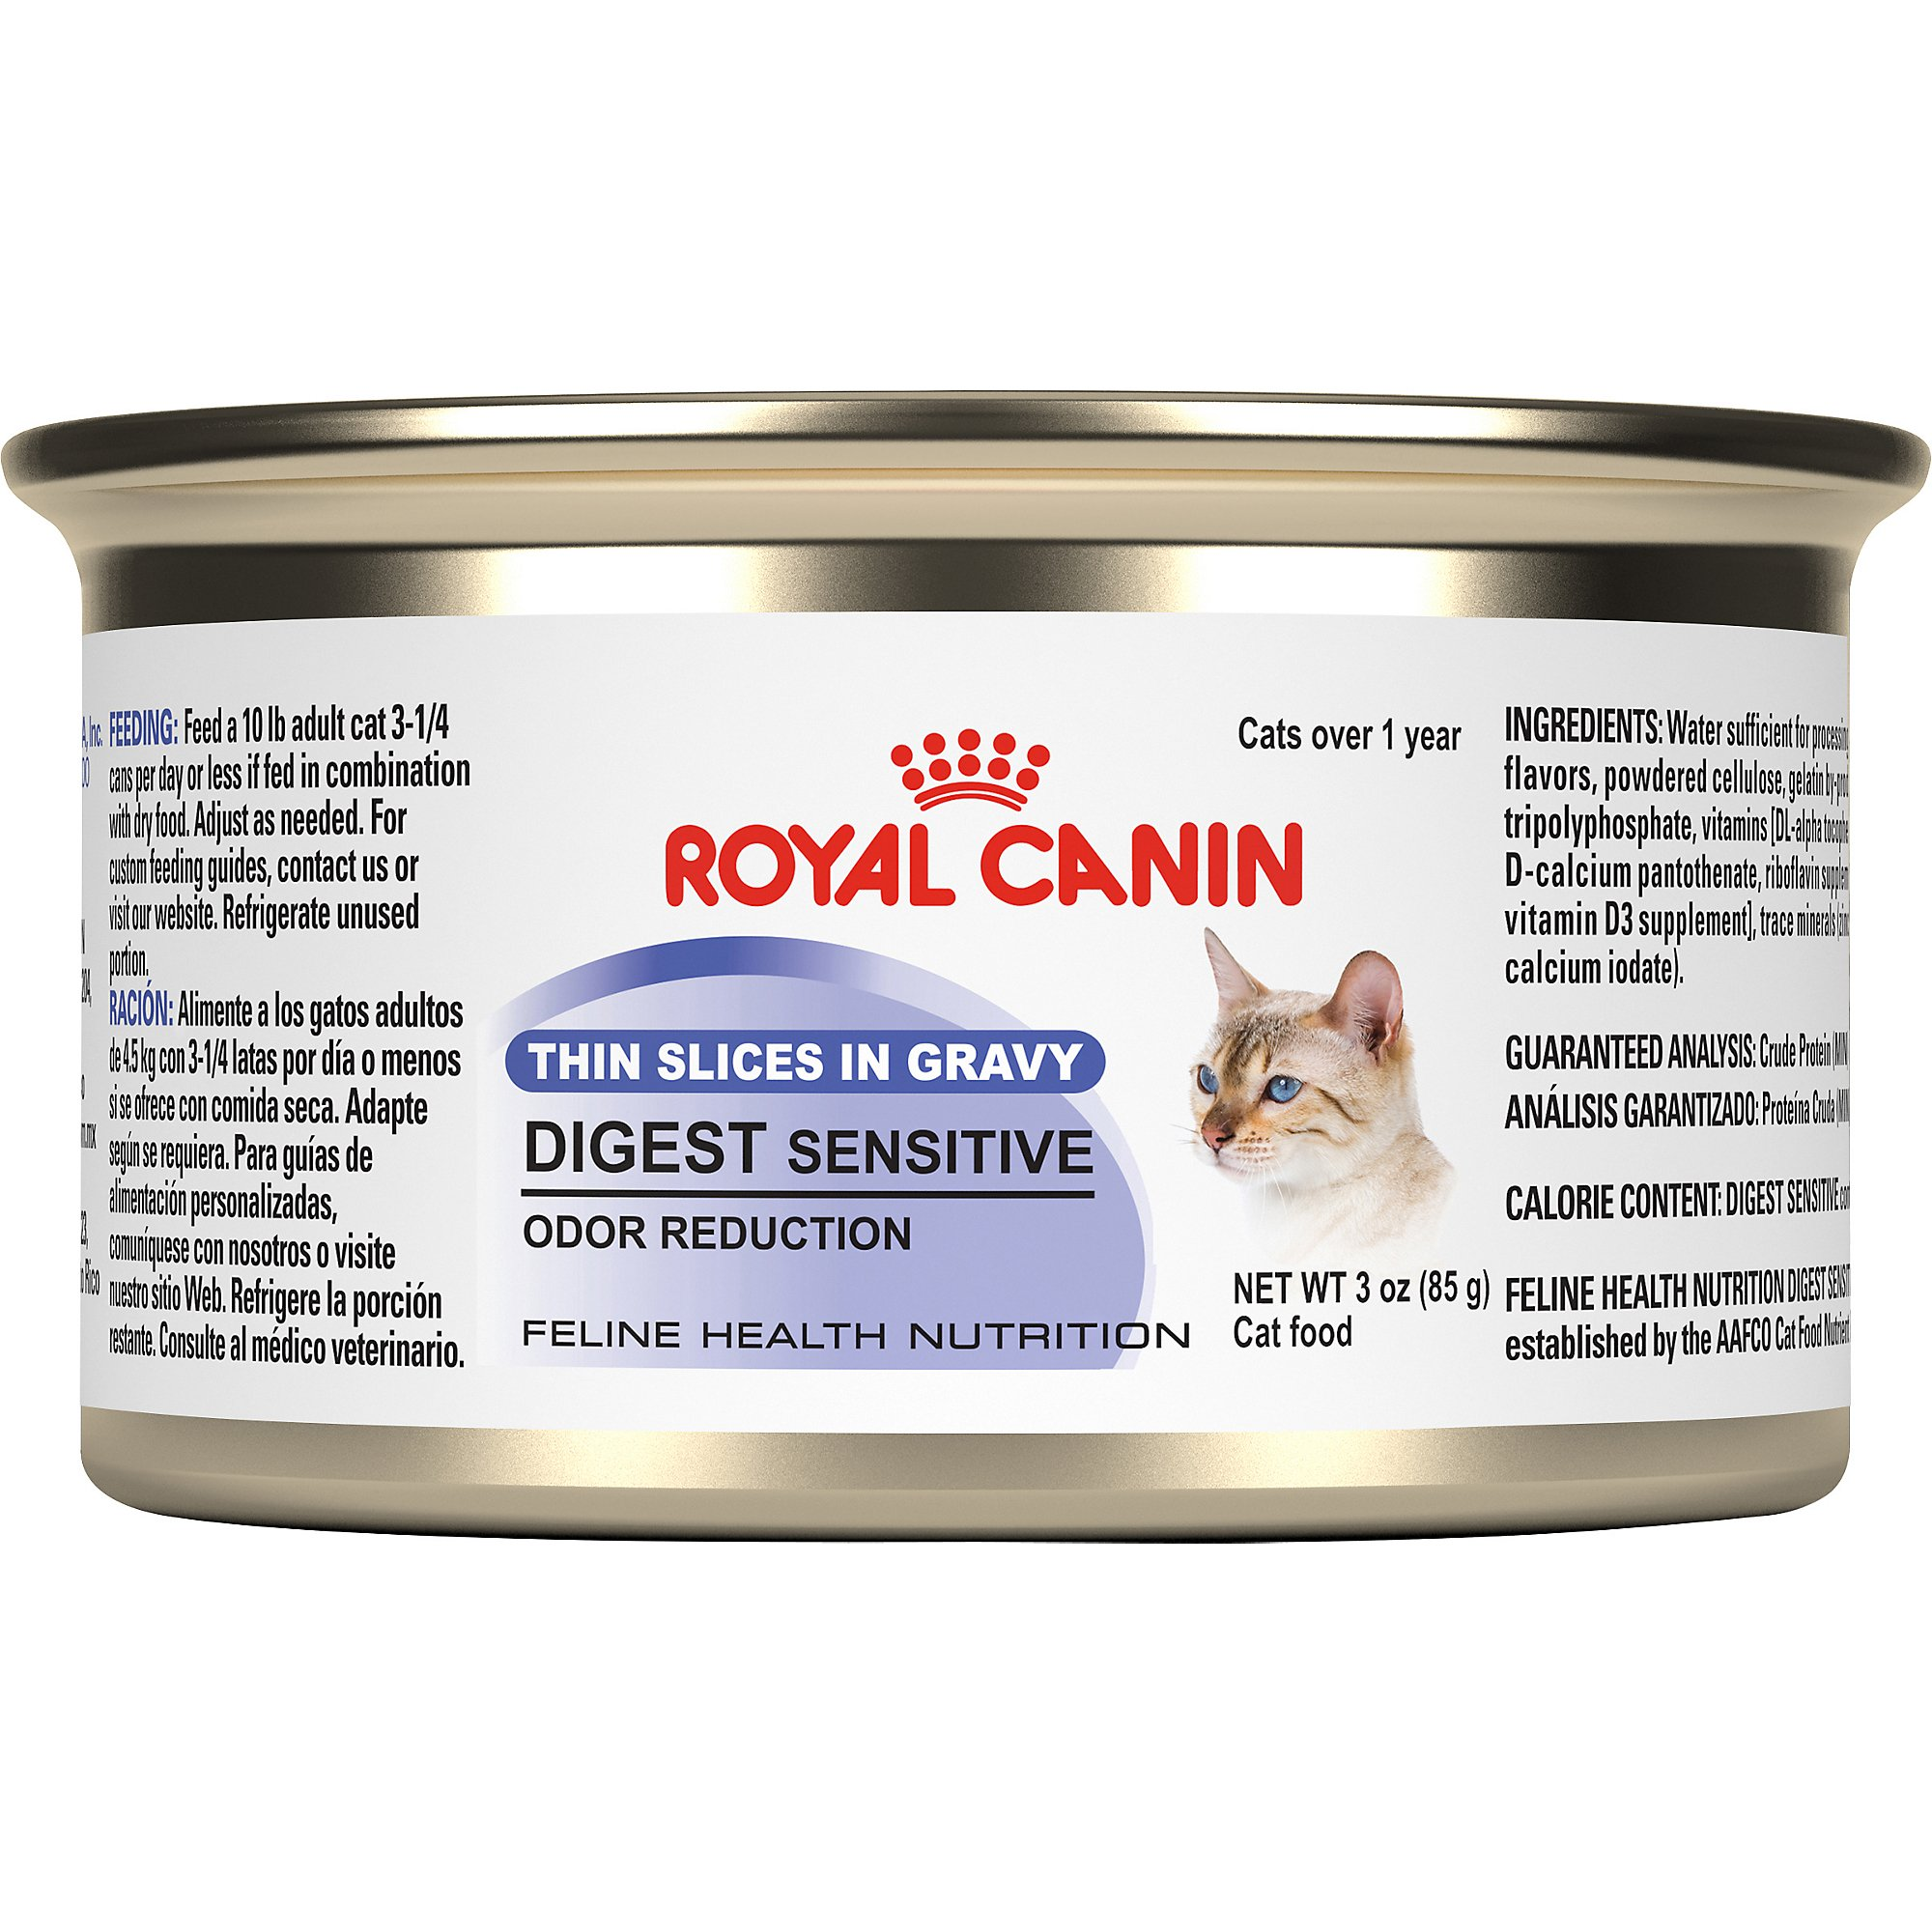 royal canin feline health nutrition digest sensitive odor. Black Bedroom Furniture Sets. Home Design Ideas